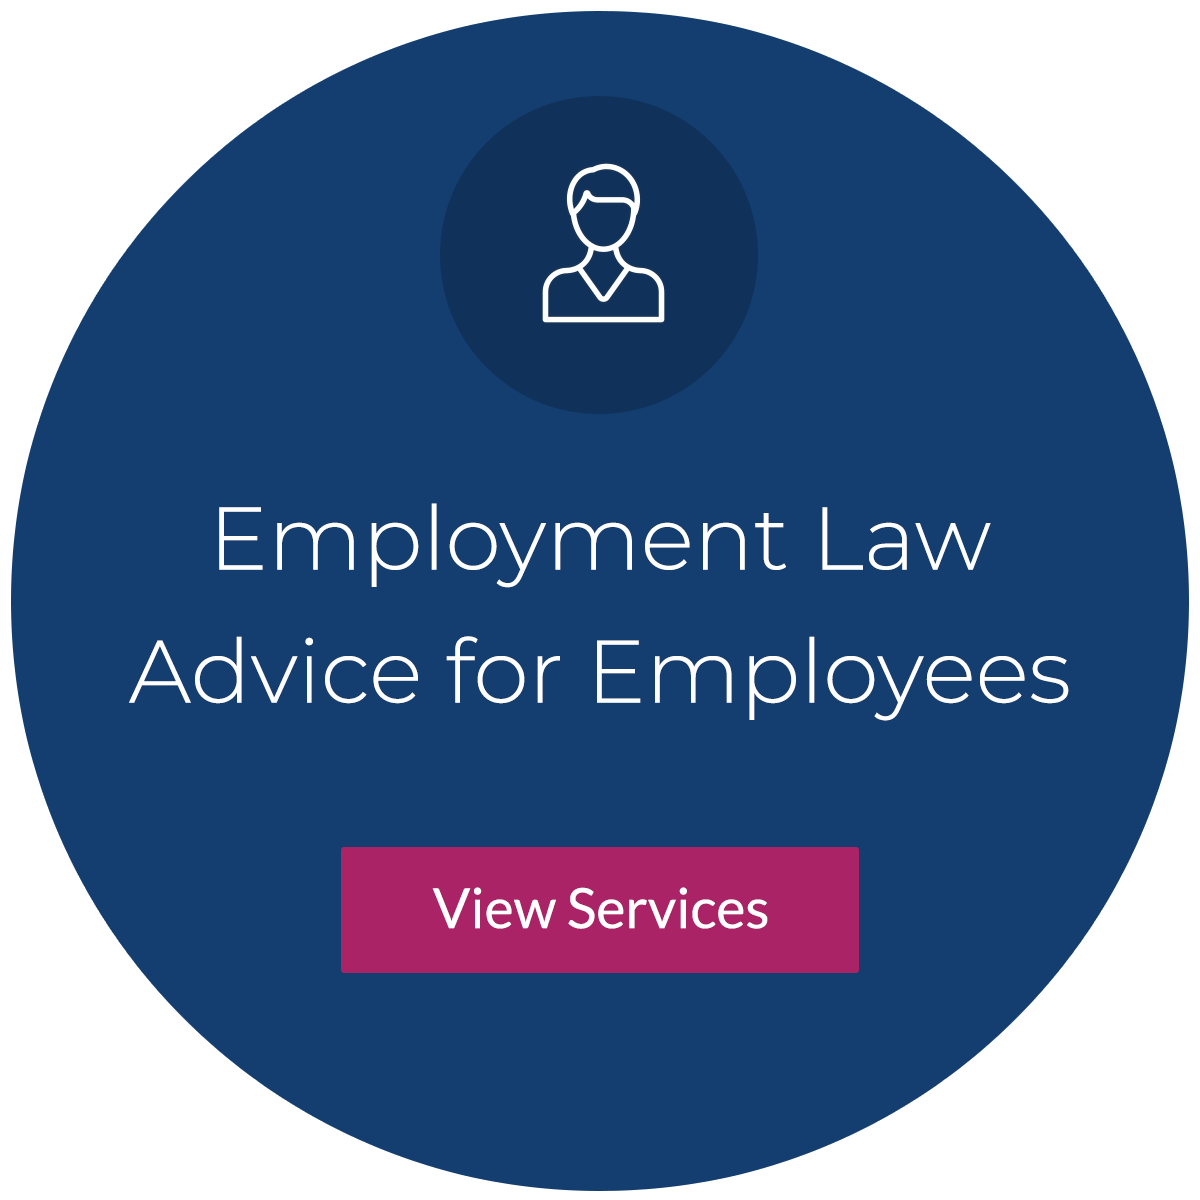 Employment-Law-Advice-for-Employees-